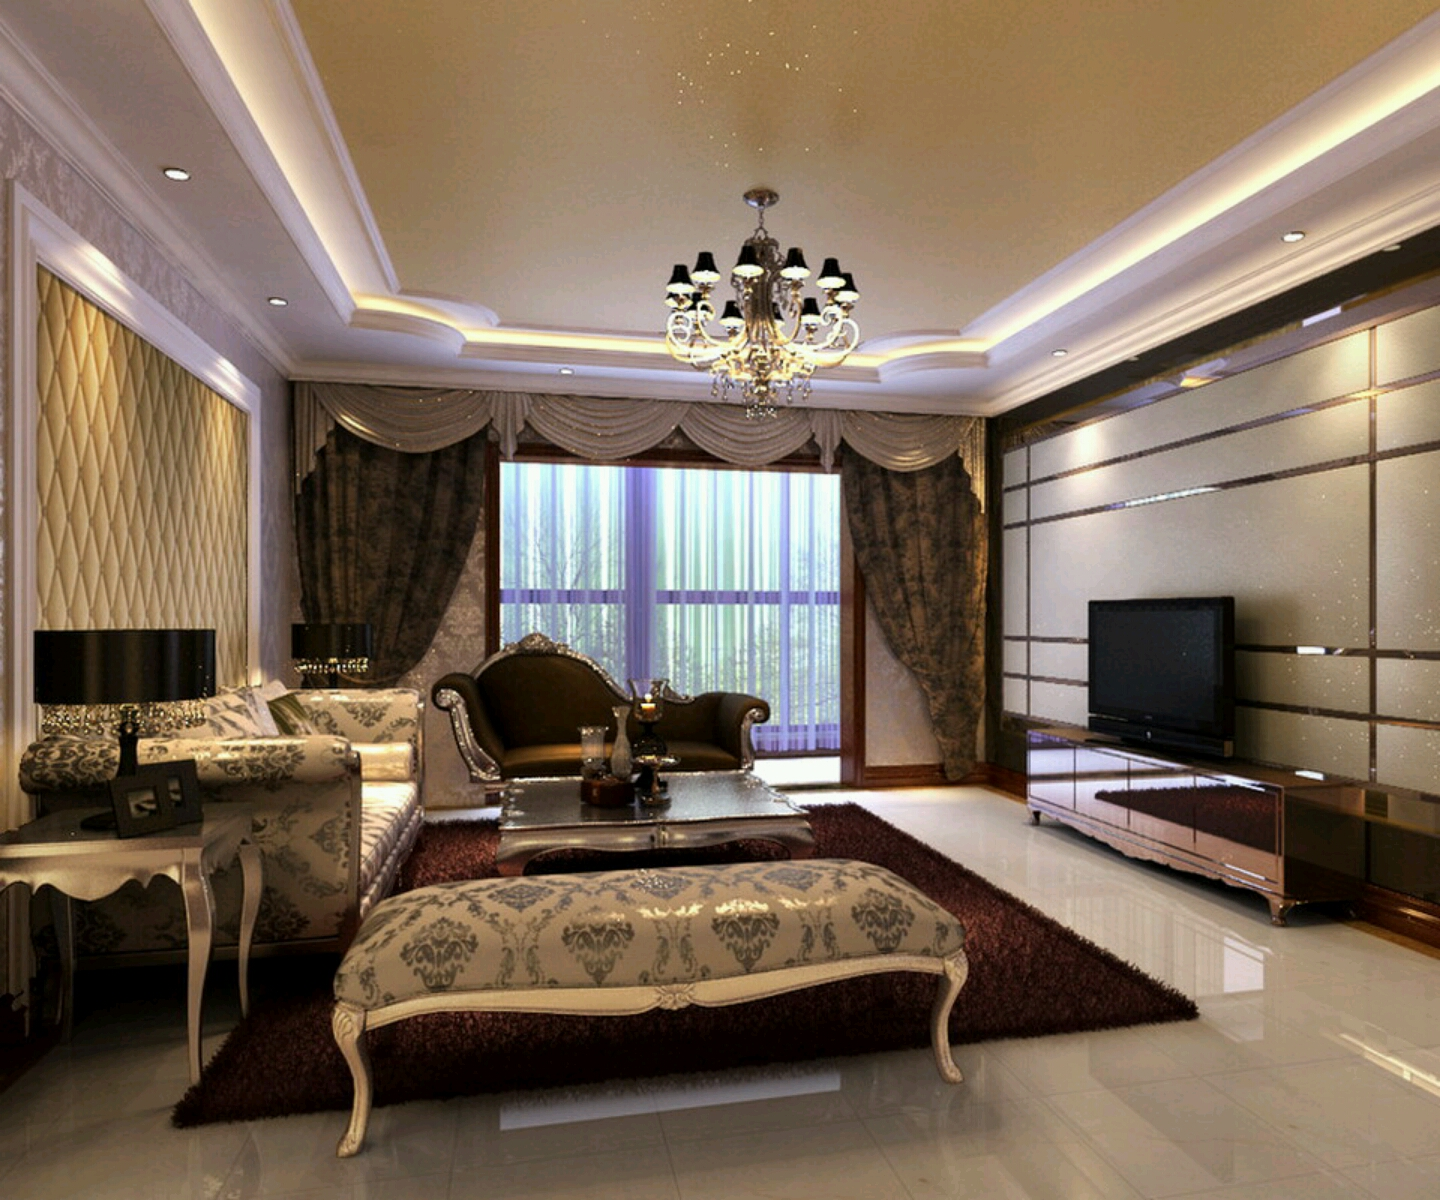 New home designs latest luxury homes interior decoration living room designs ideas - Interior design in living room ...